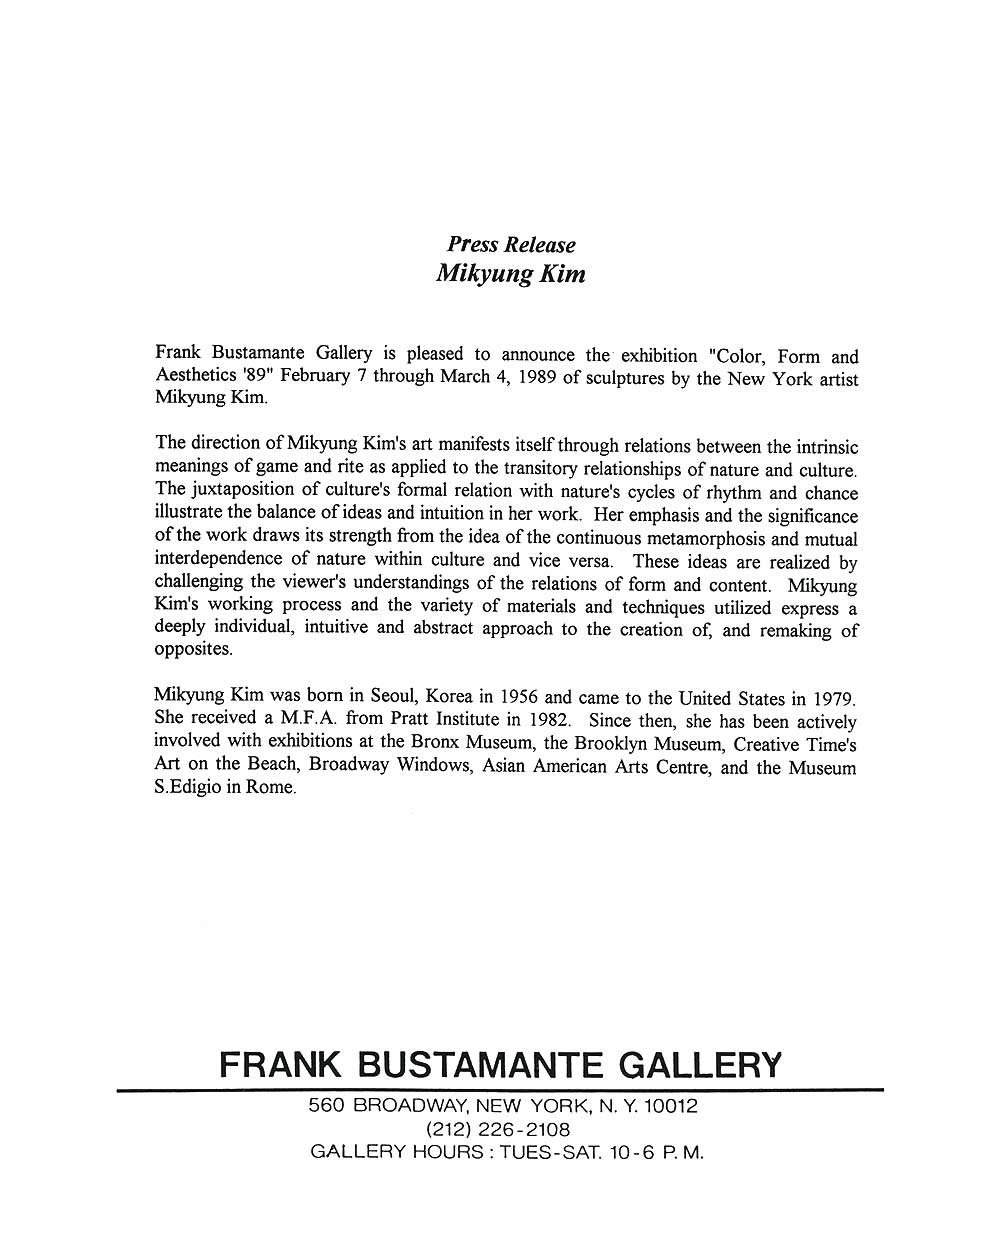 Color, Form and Aesthetics '89, press release